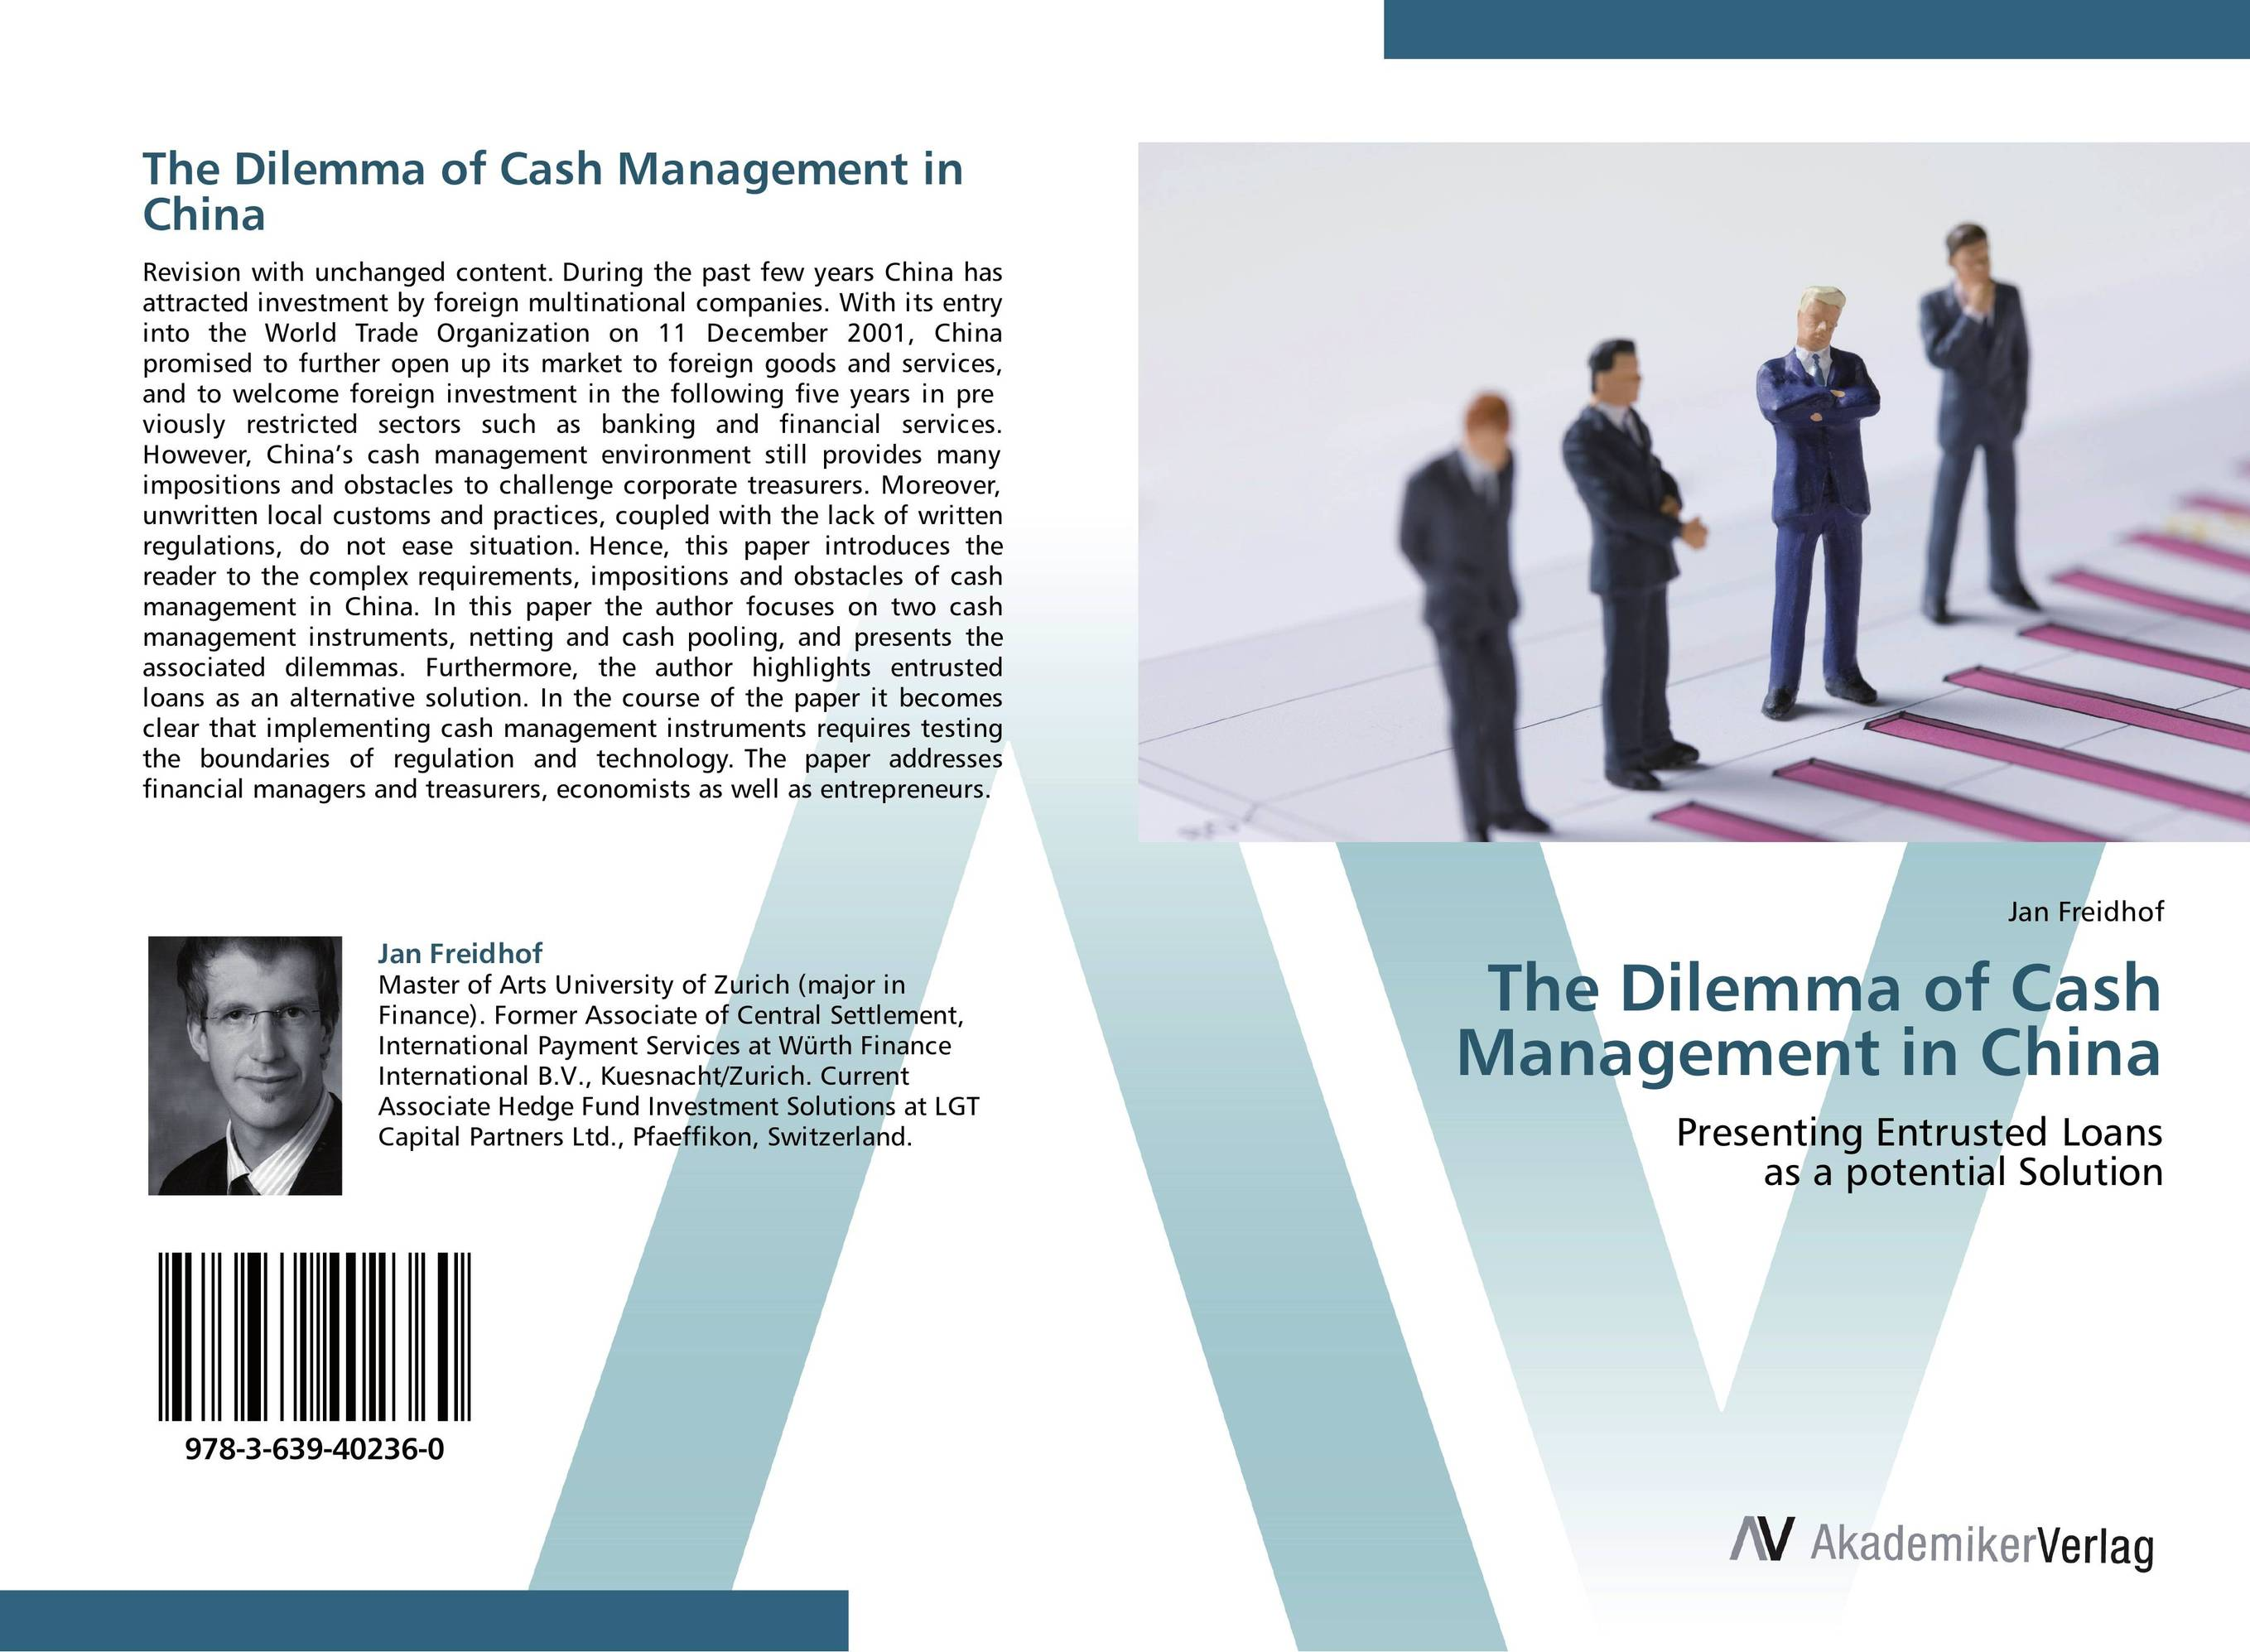 The Dilemma of Cash Management in China corporate real estate management in tanzania